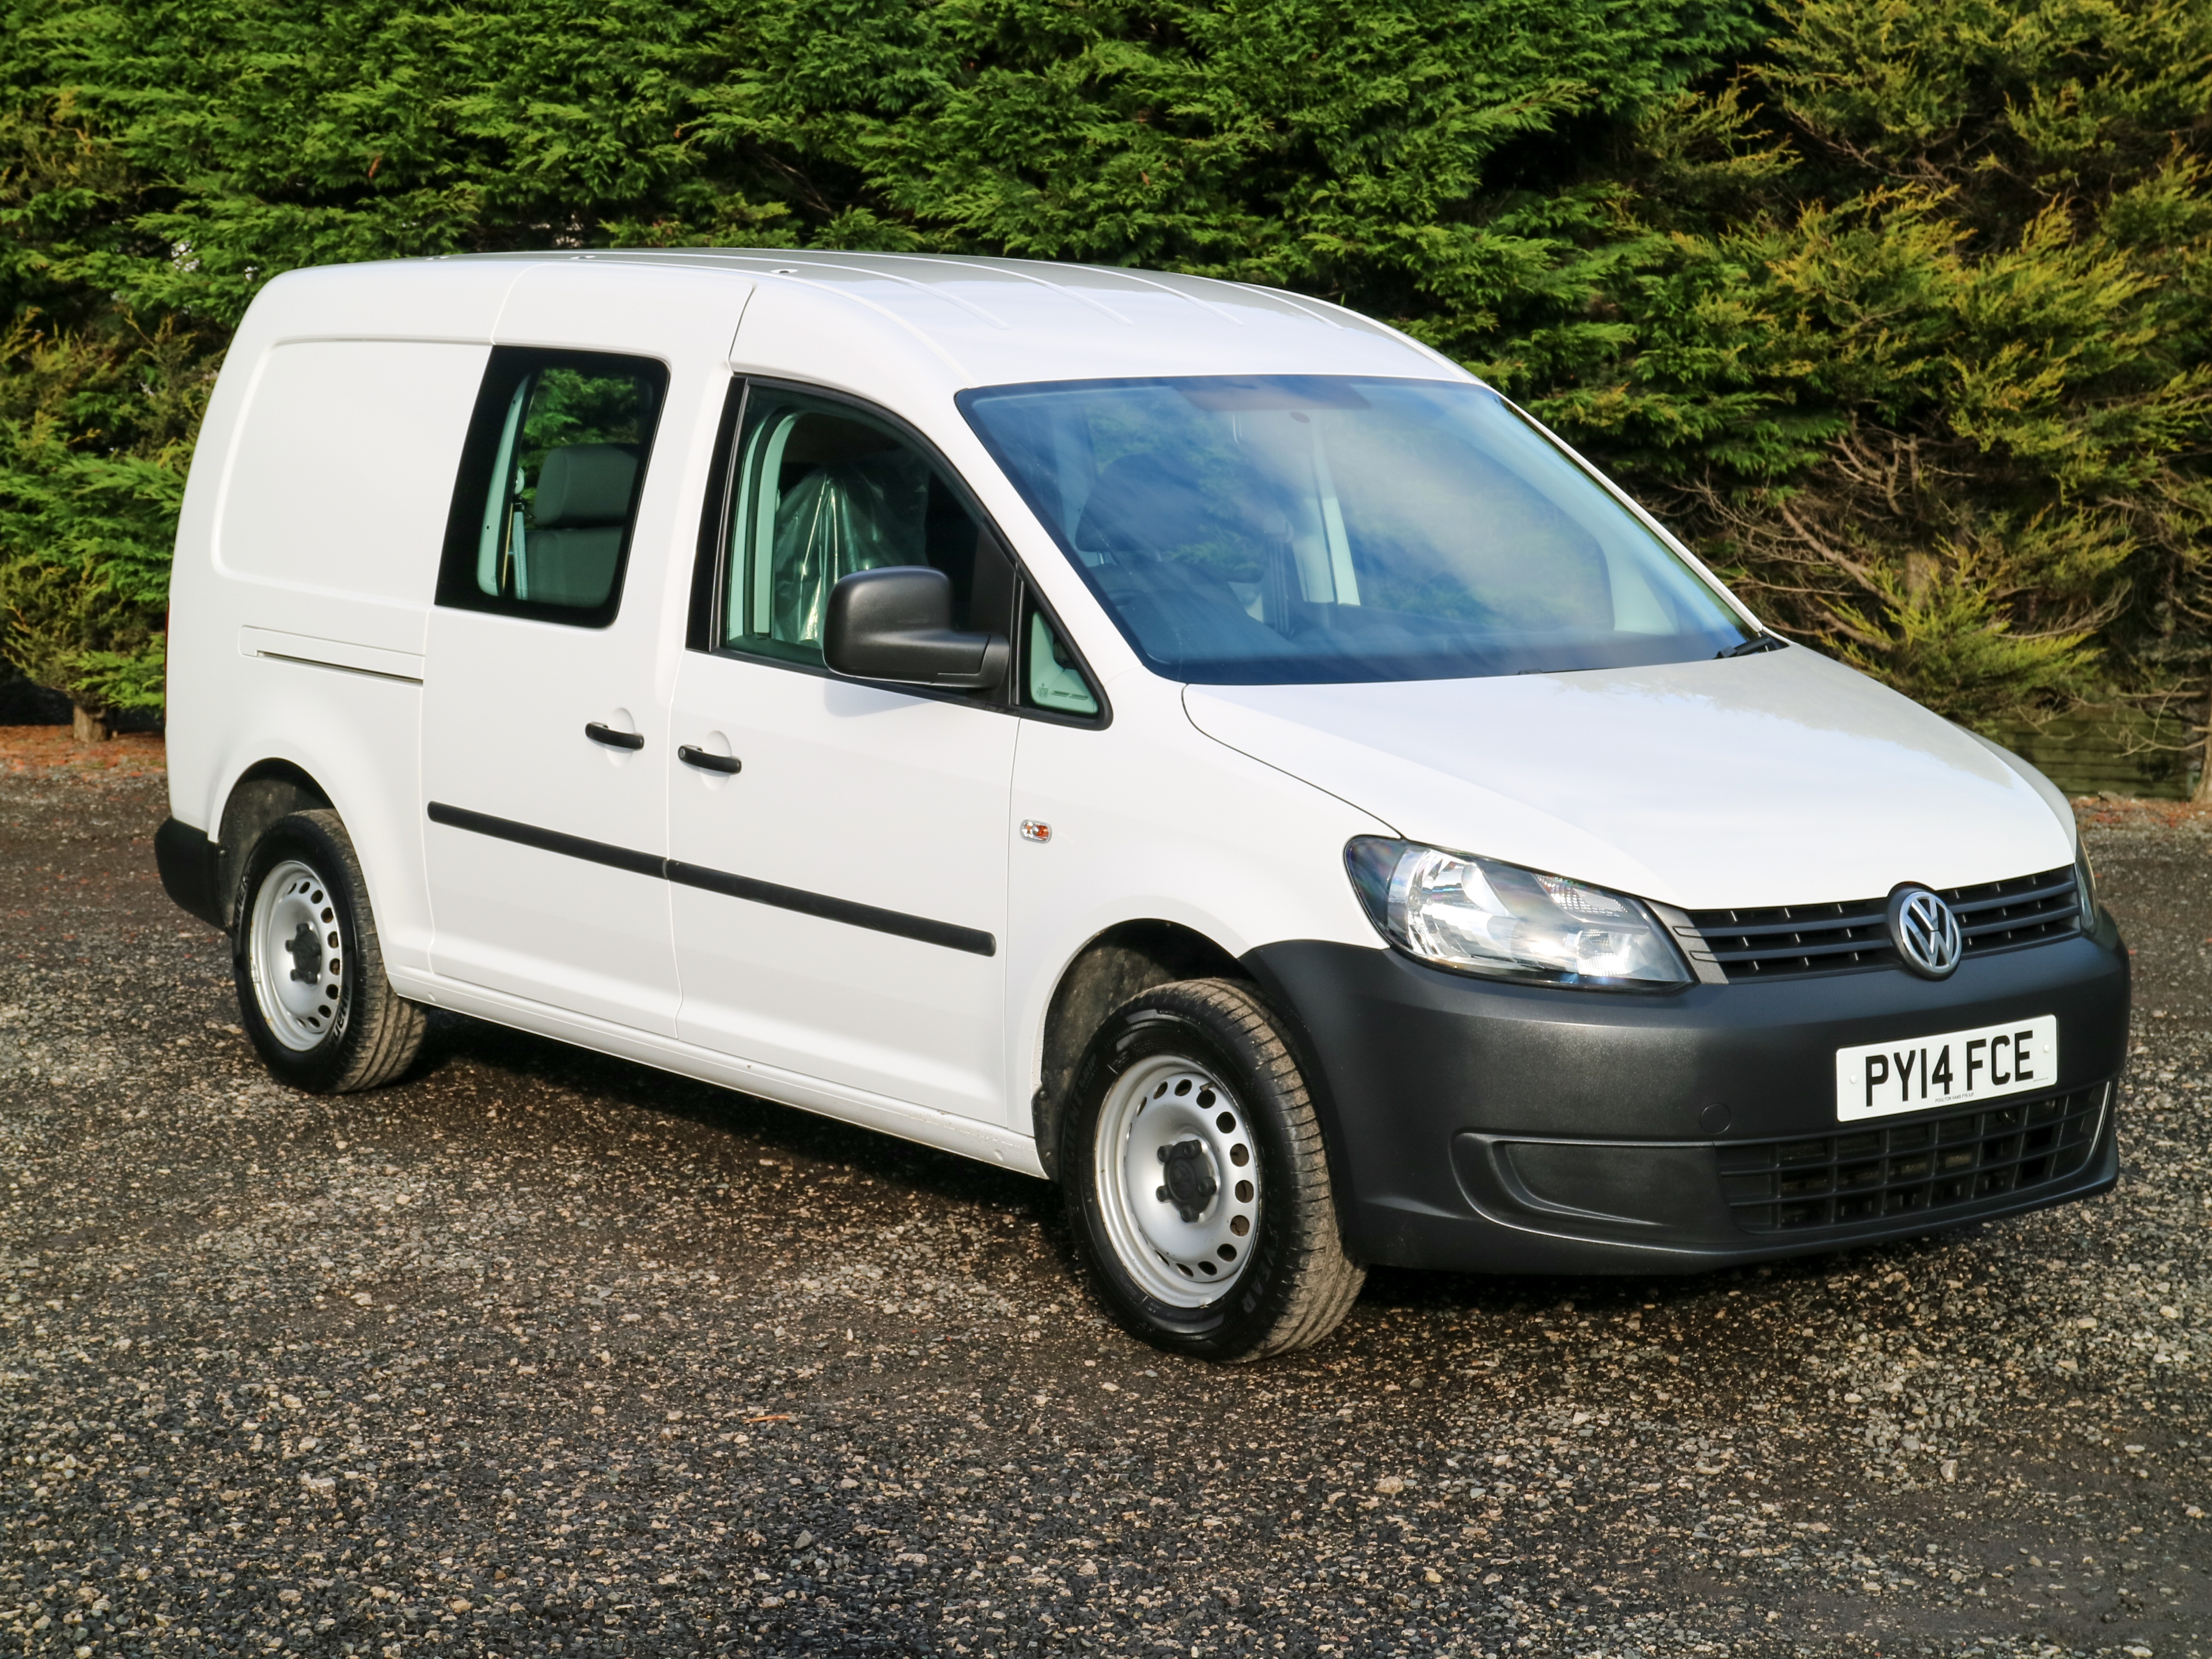 used volkswagen caddy c20 maxi kombi eu 5 102bhp lwb 5 seat crew cab double cab van 2014 14. Black Bedroom Furniture Sets. Home Design Ideas